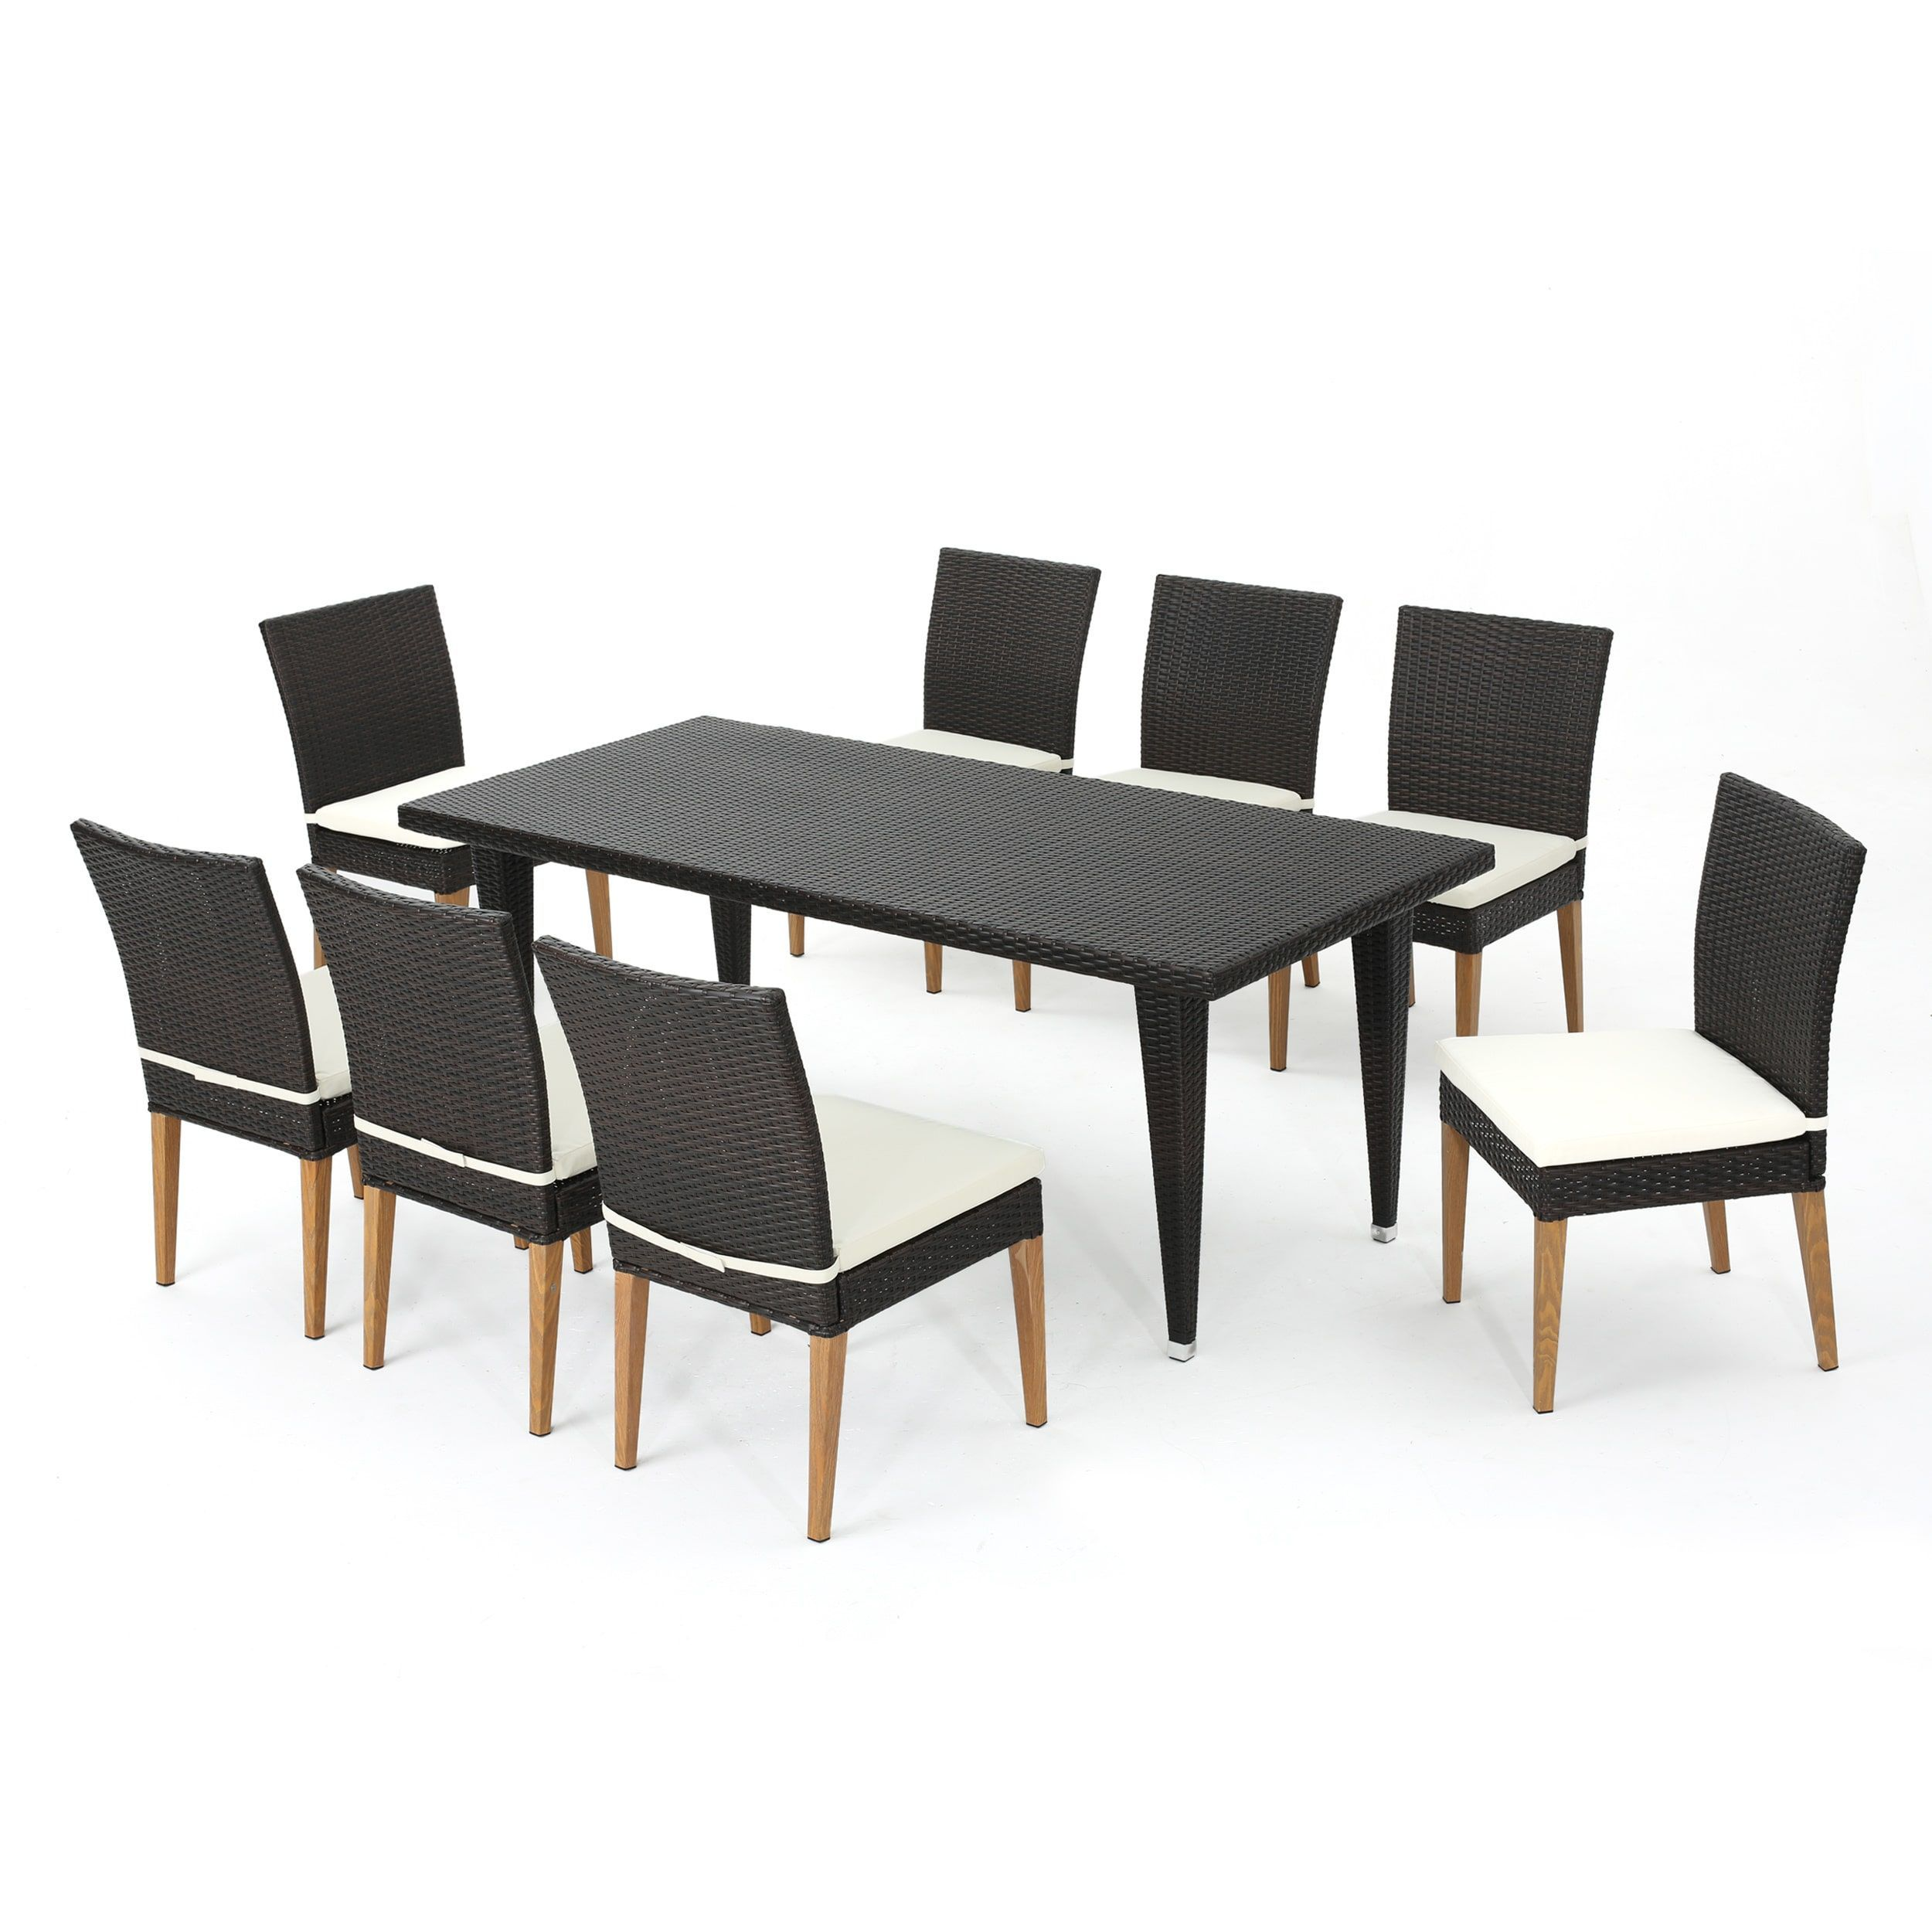 Colt Outdoor 9-piece Rectangular Wicker Dining Set with Cushions by Christopher Knight Home